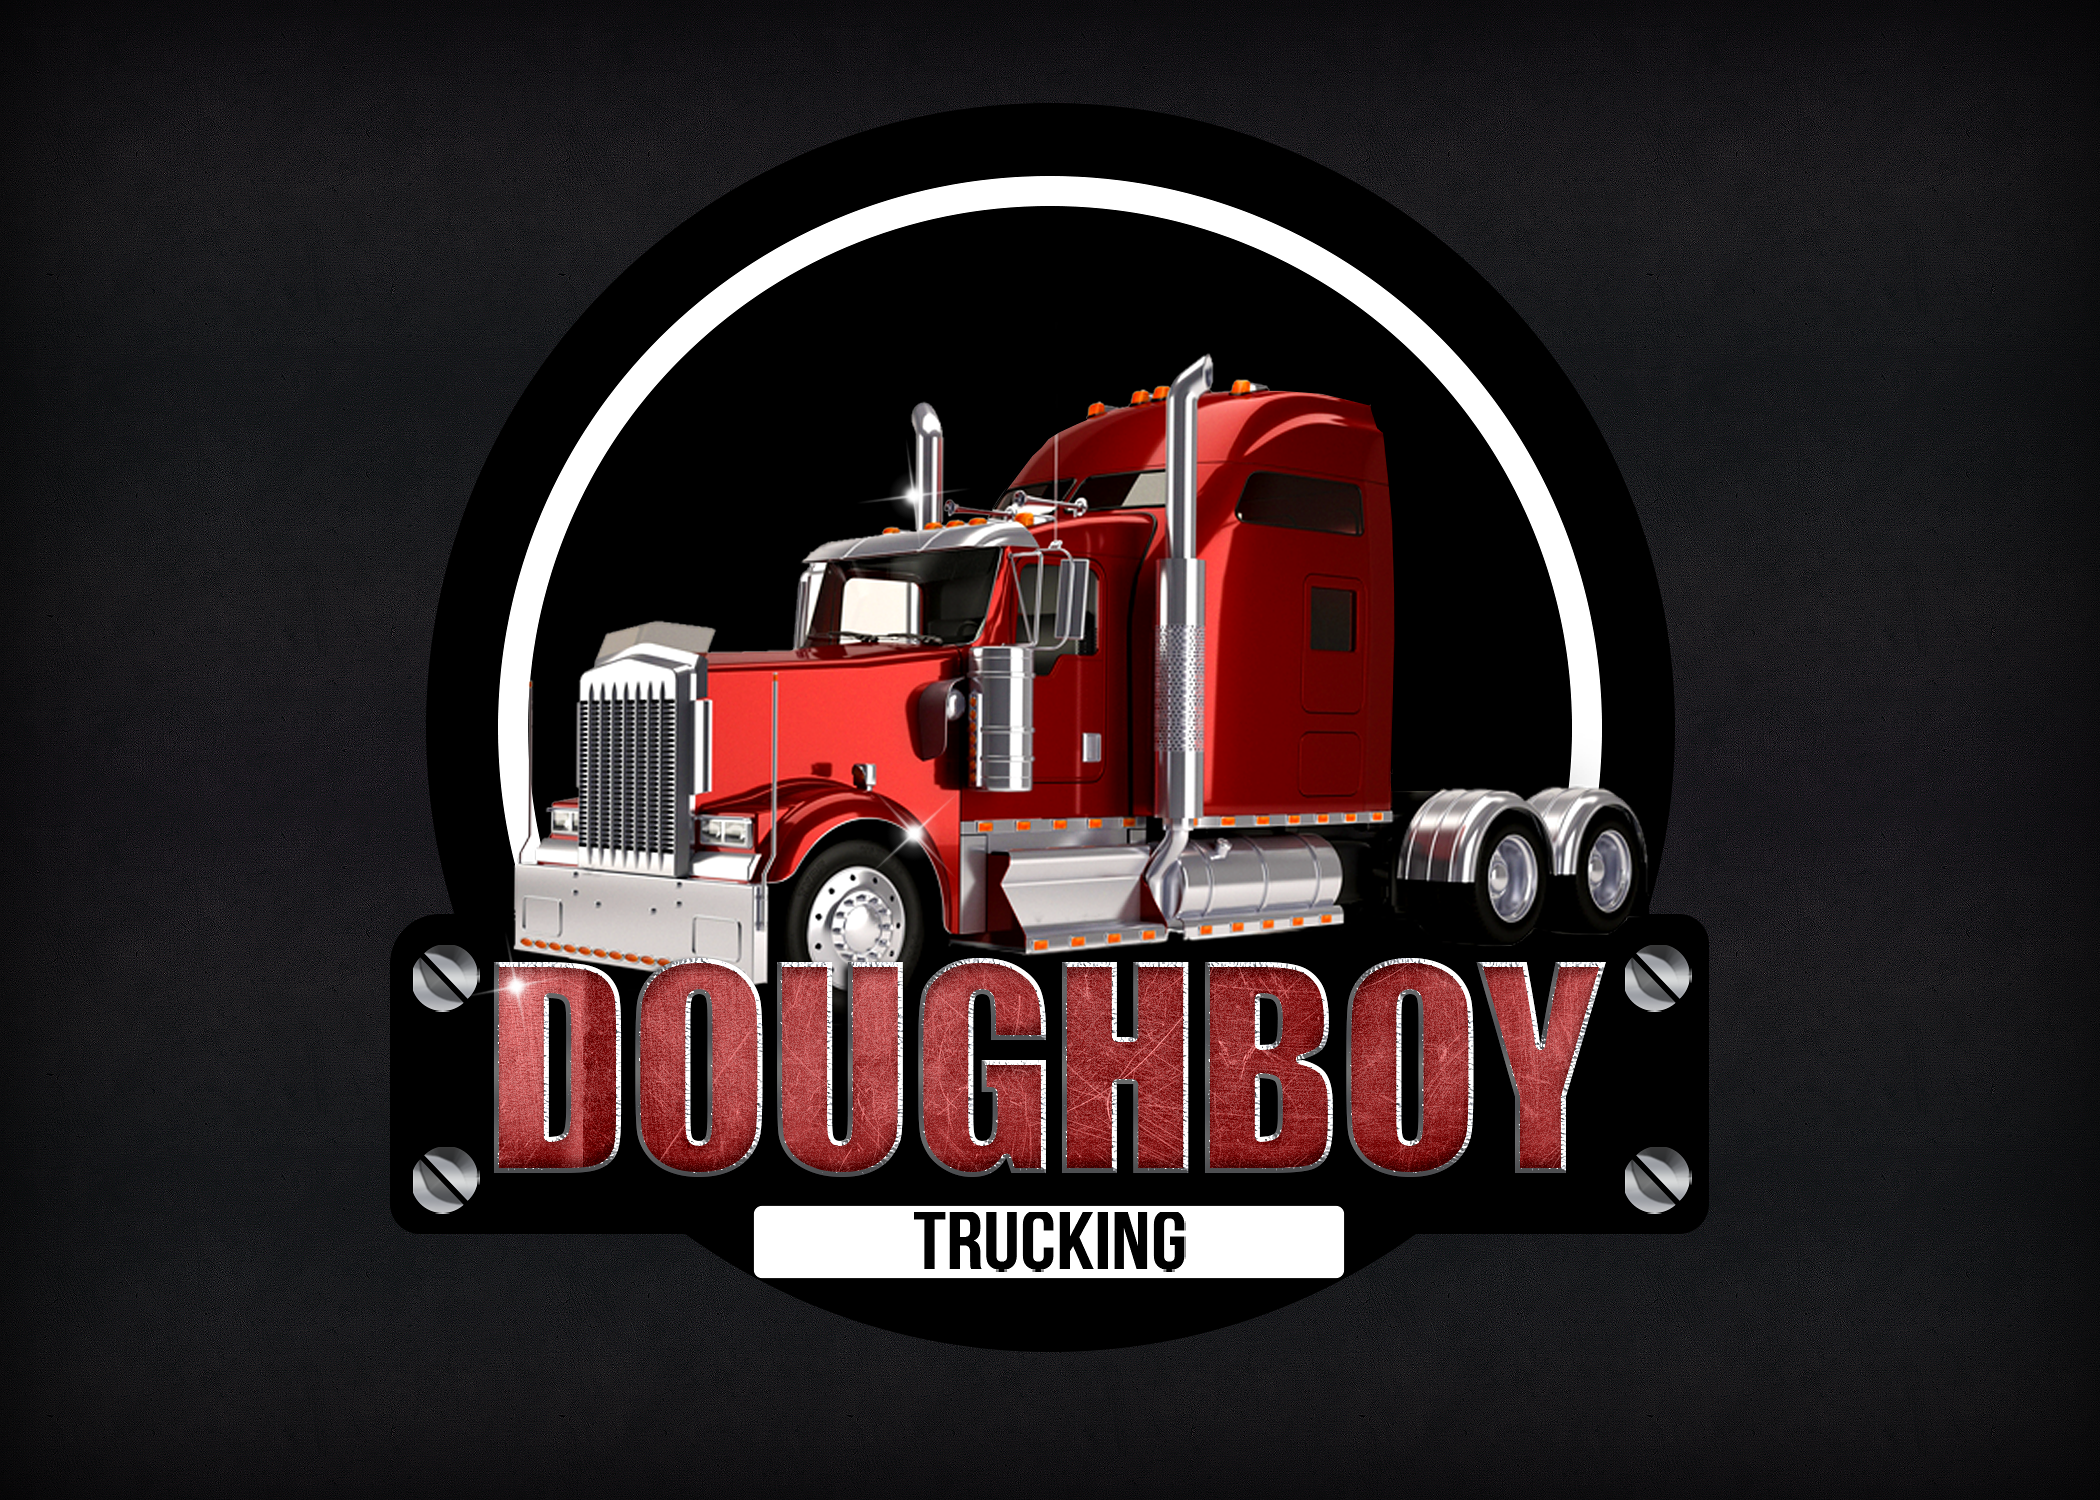 Doughboy Trucking